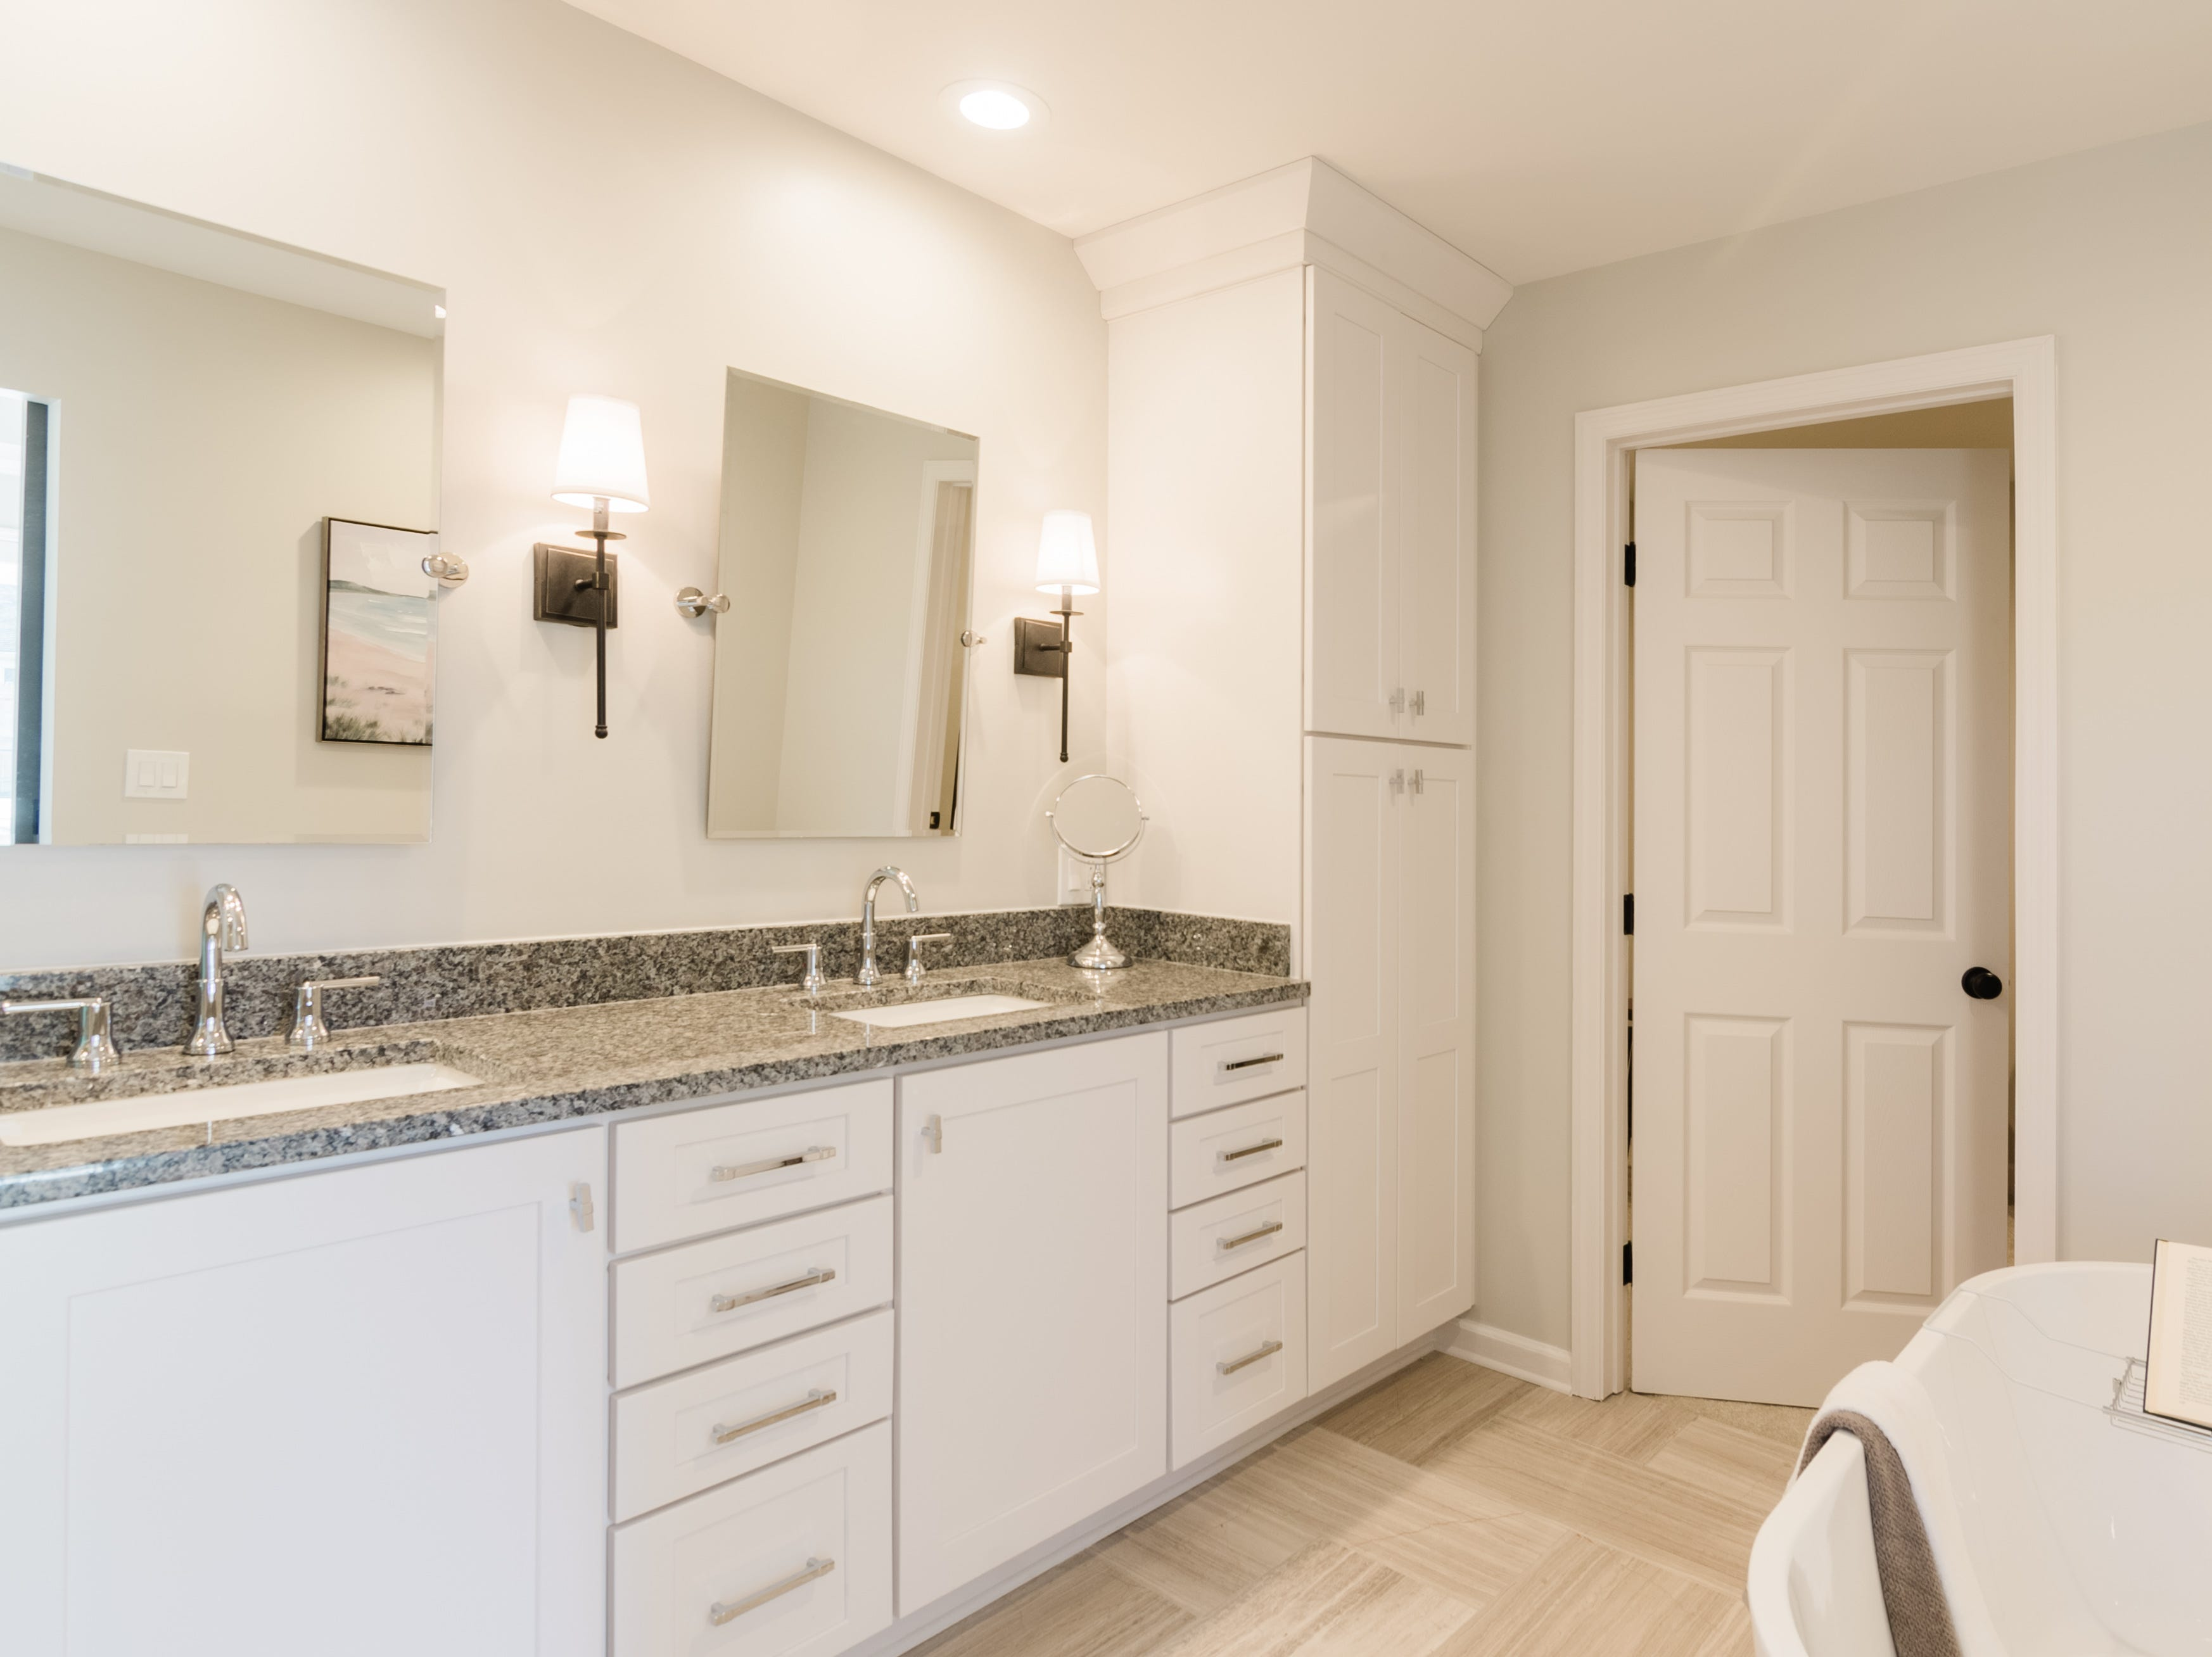 AFTER: The master bath at 405 Oakvale was opened up, expanded and now features ample lighting and cabinet space.